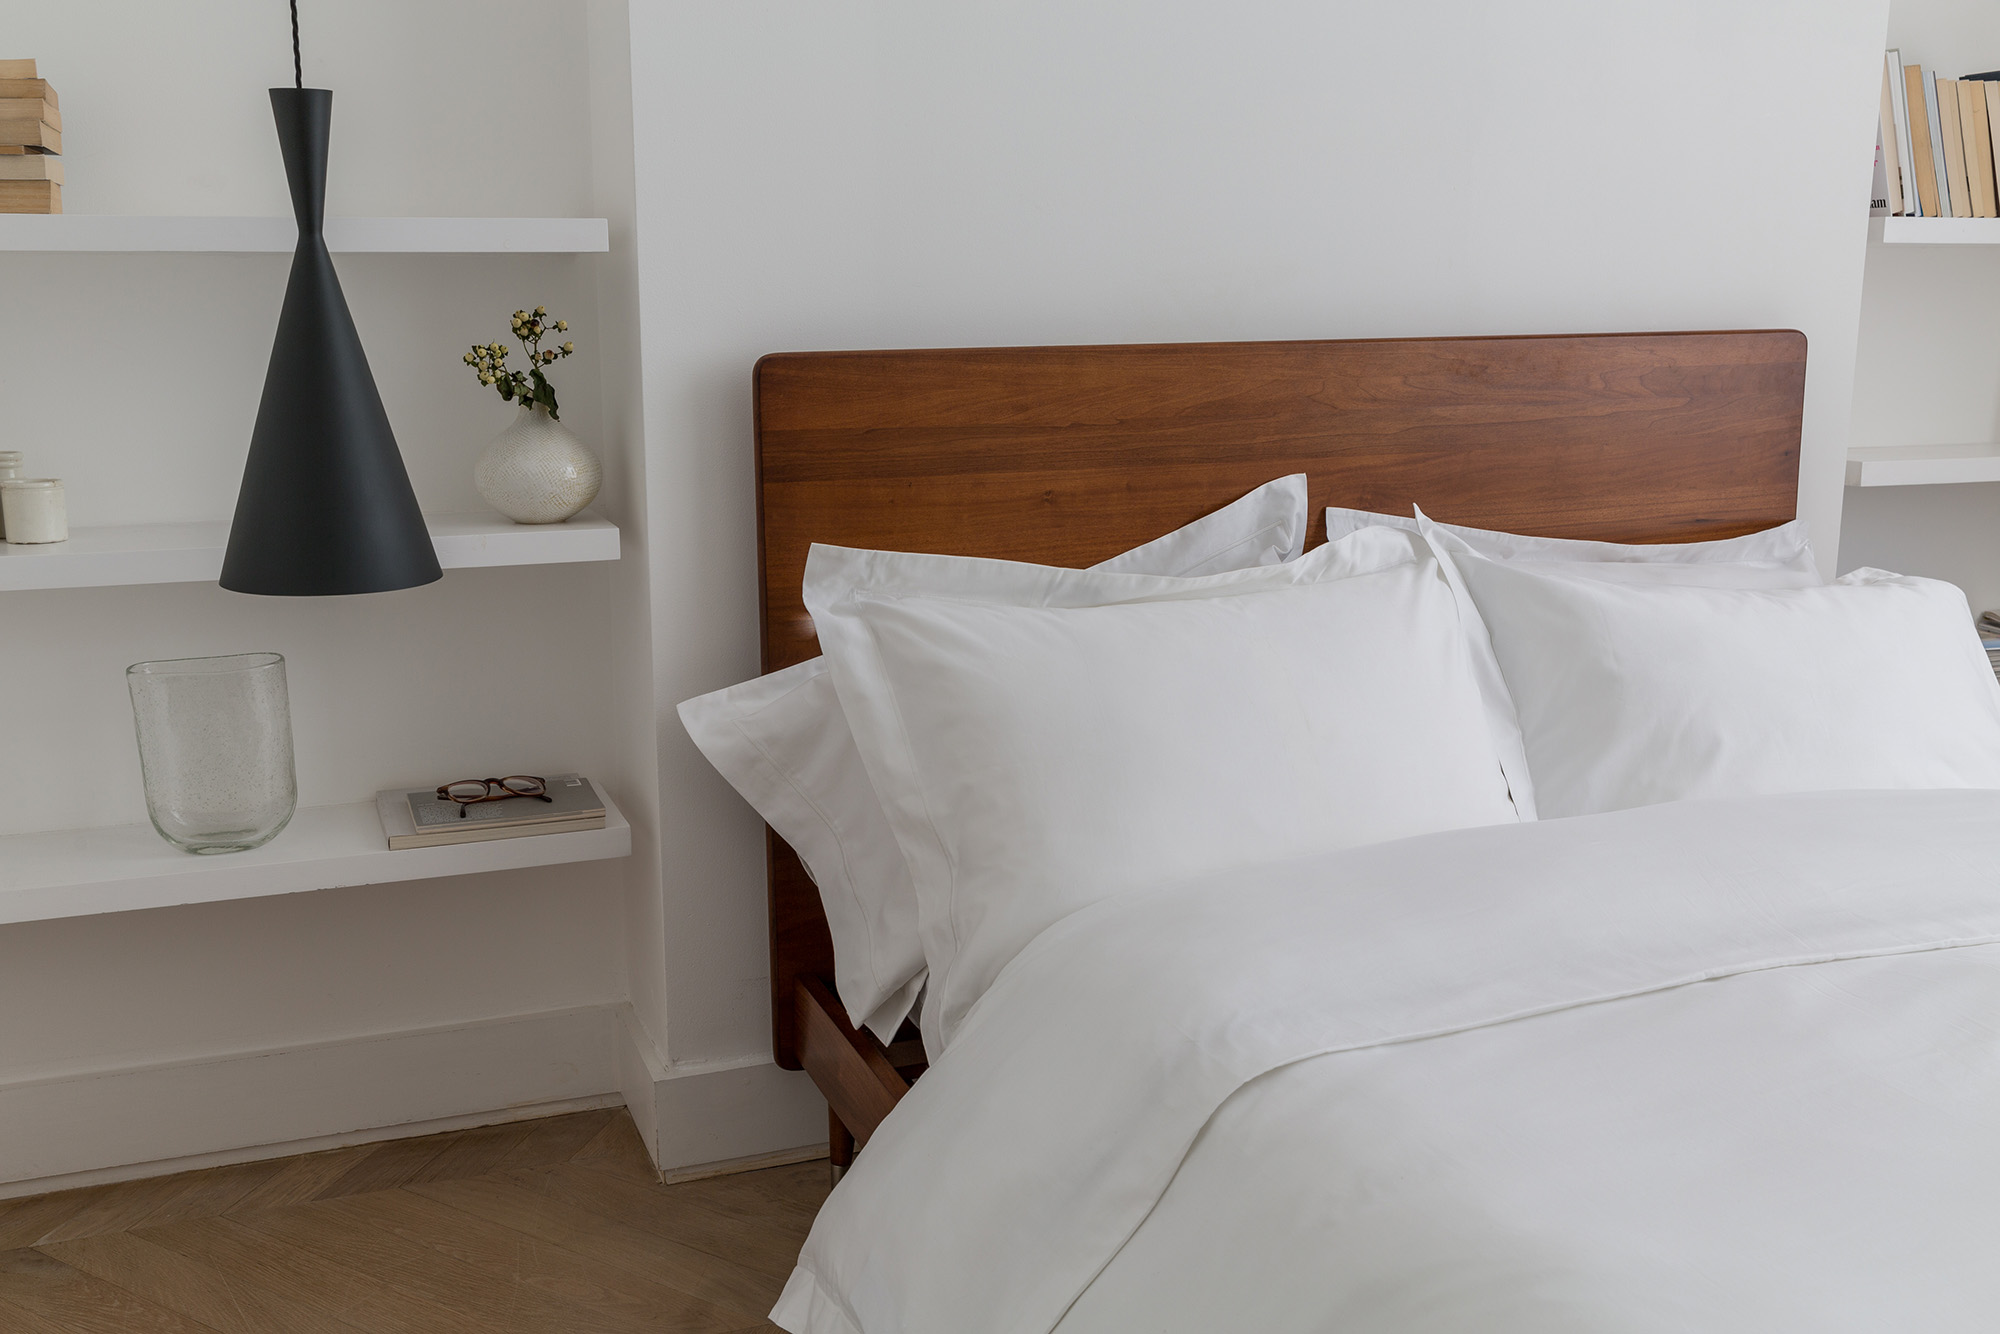 Soak&Sleep - Cranbrook plain wood bed from £525, 600TC Egyptian Cotton bed linen from £20.90